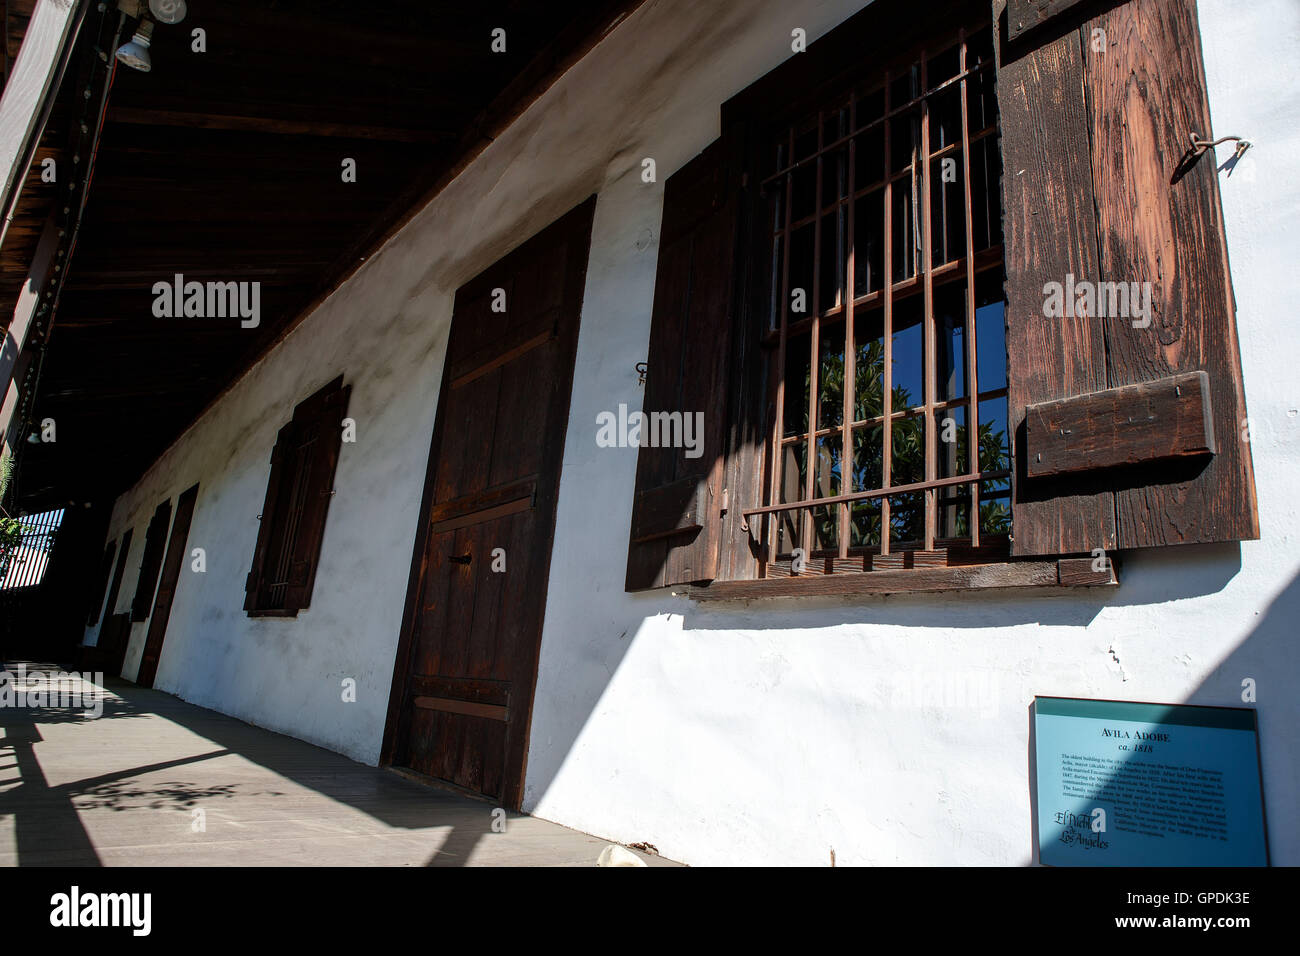 Avila Adobe, Olivera Street, Los Angeles, California, United States of America - Stock Image